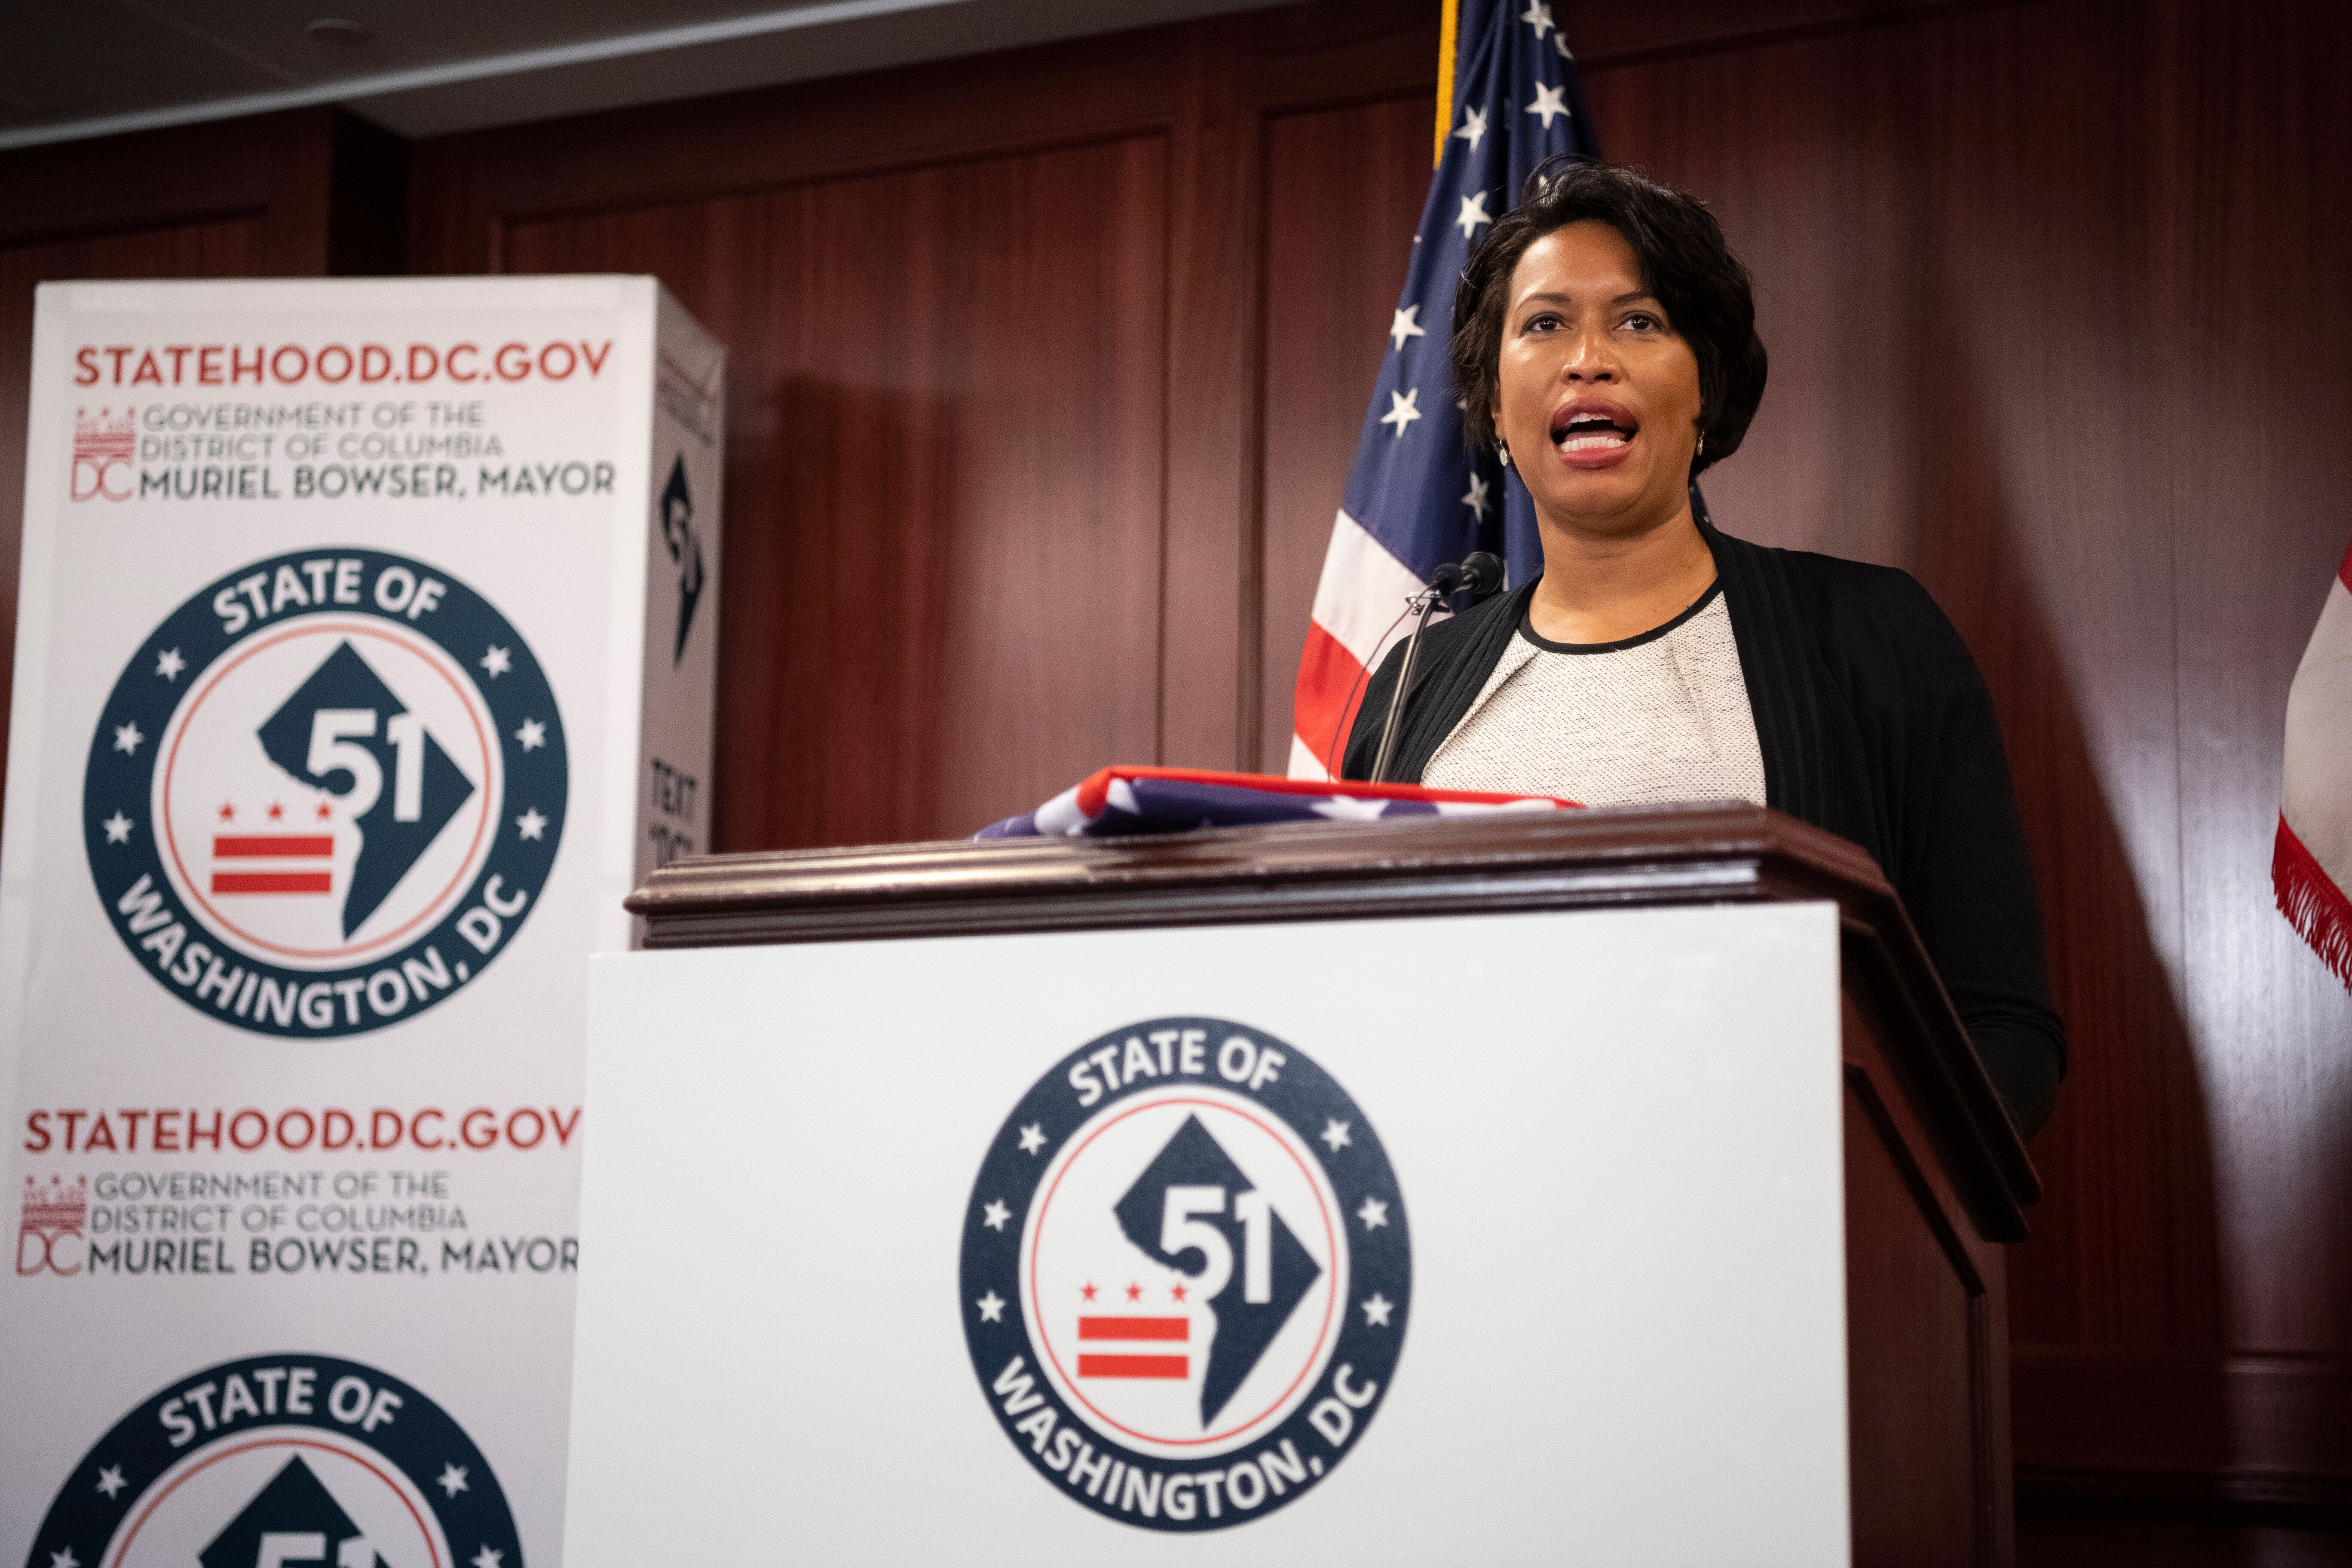 District of Columbia Mayor Muriel Bowser at a June 16 news conference in the U.S. Capitol on D.C. statehood.